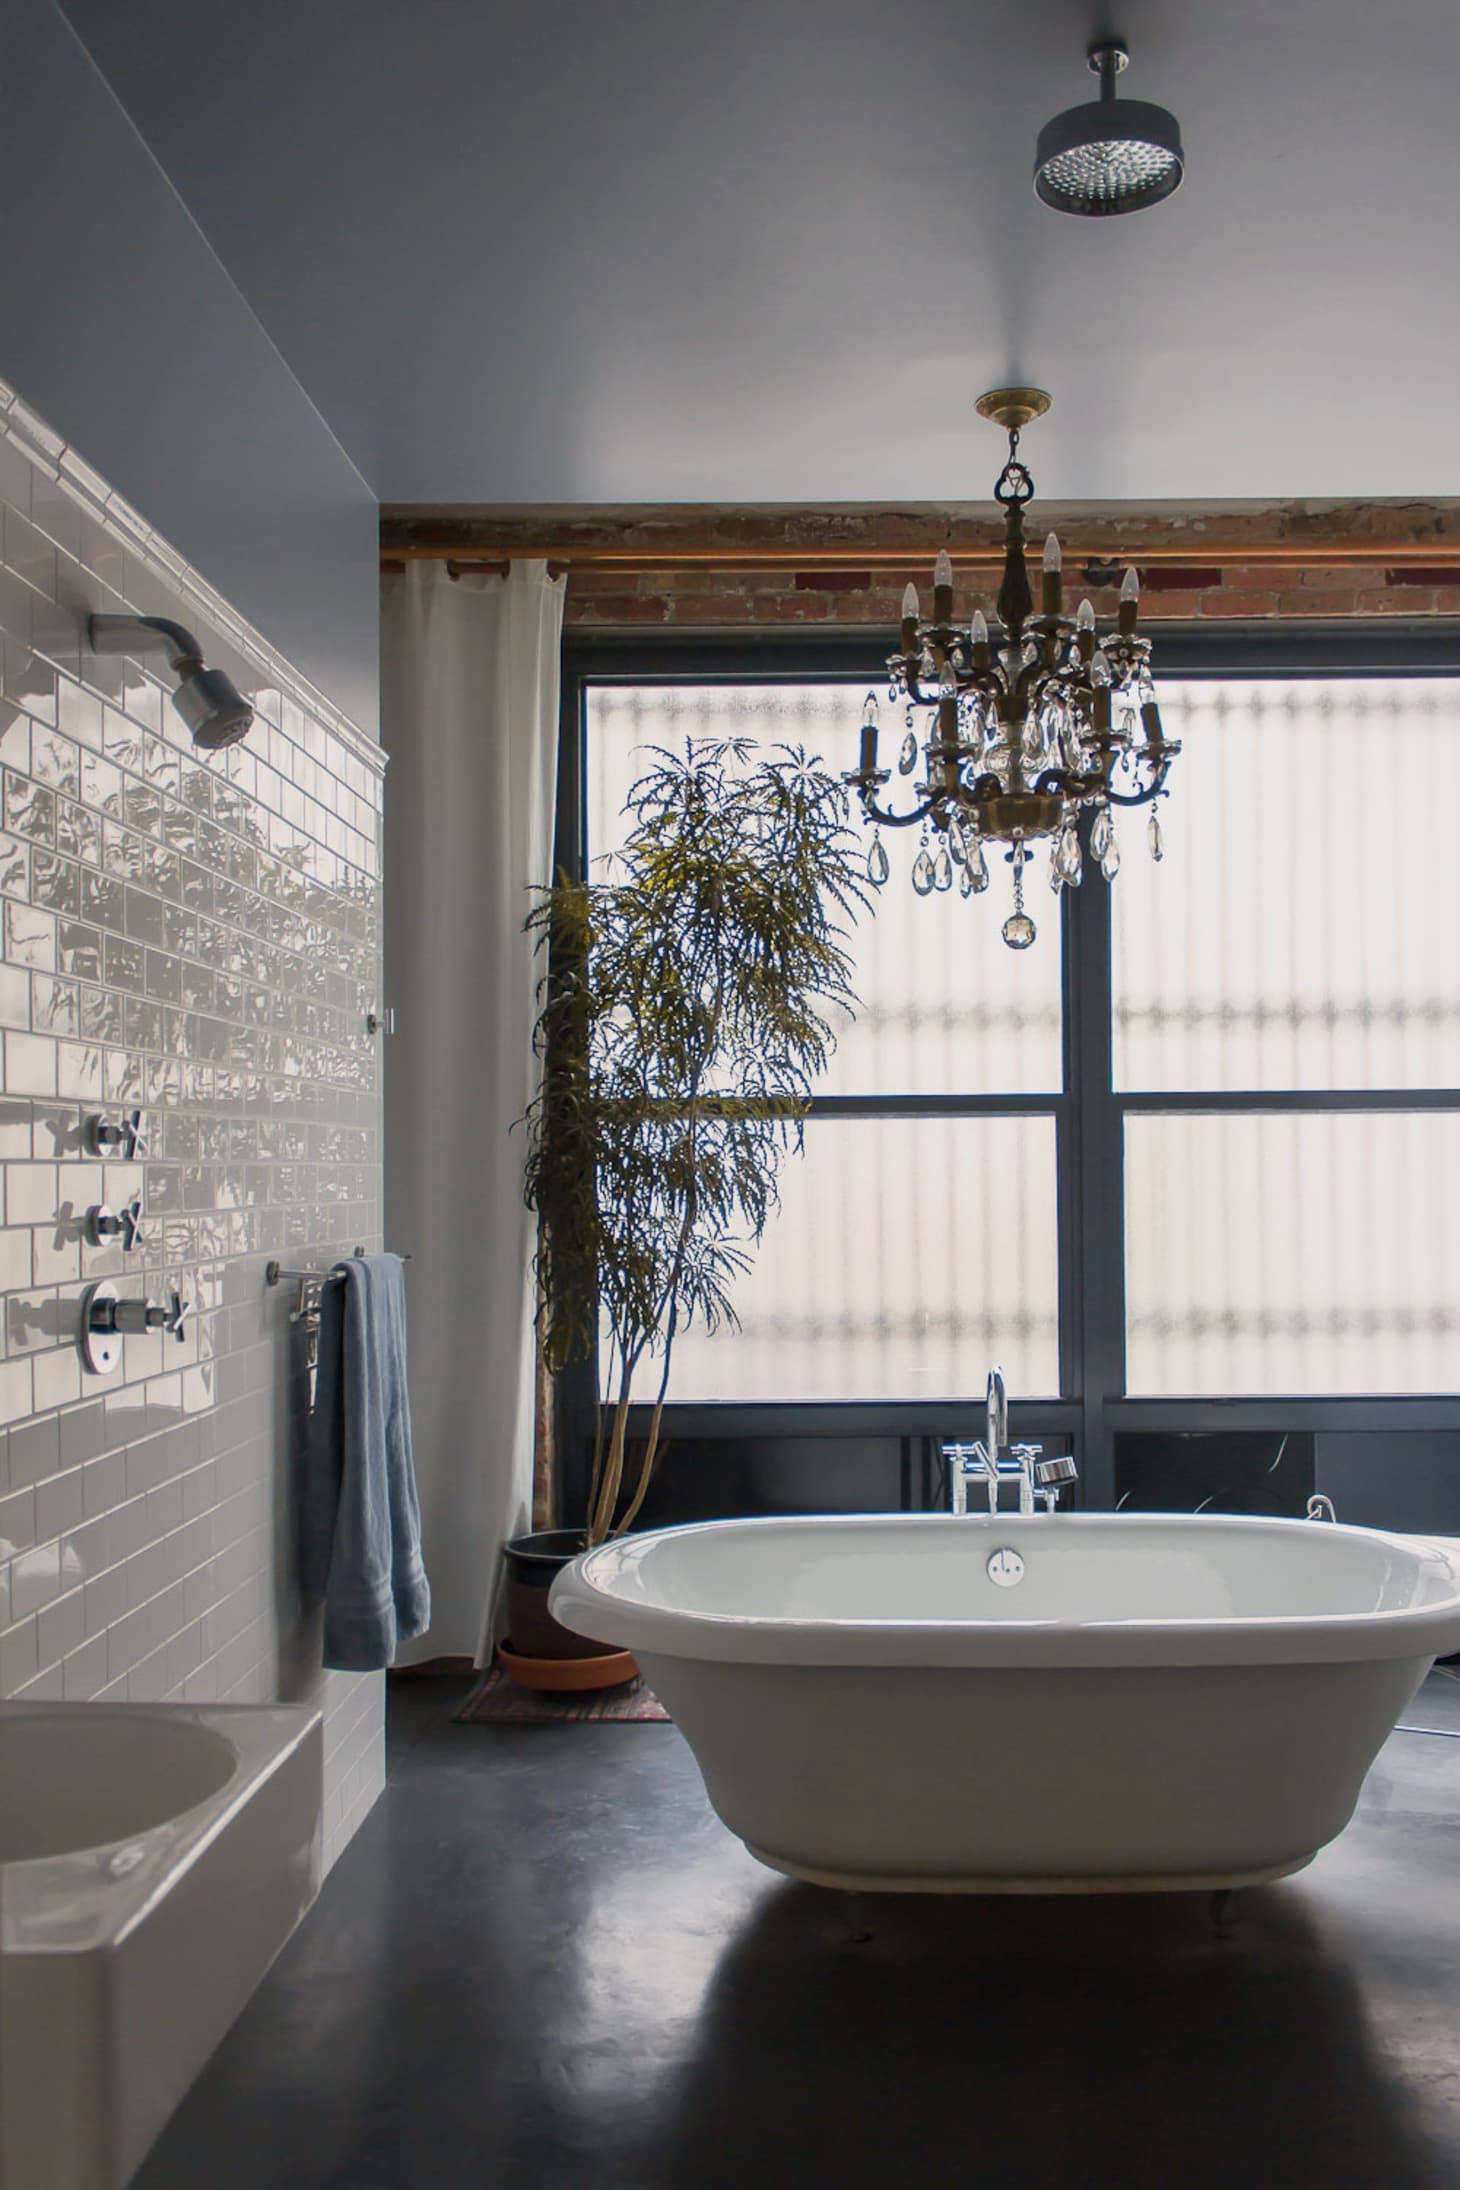 Fancy Bath Lighting: Inspiration and Tips for Hanging a ...